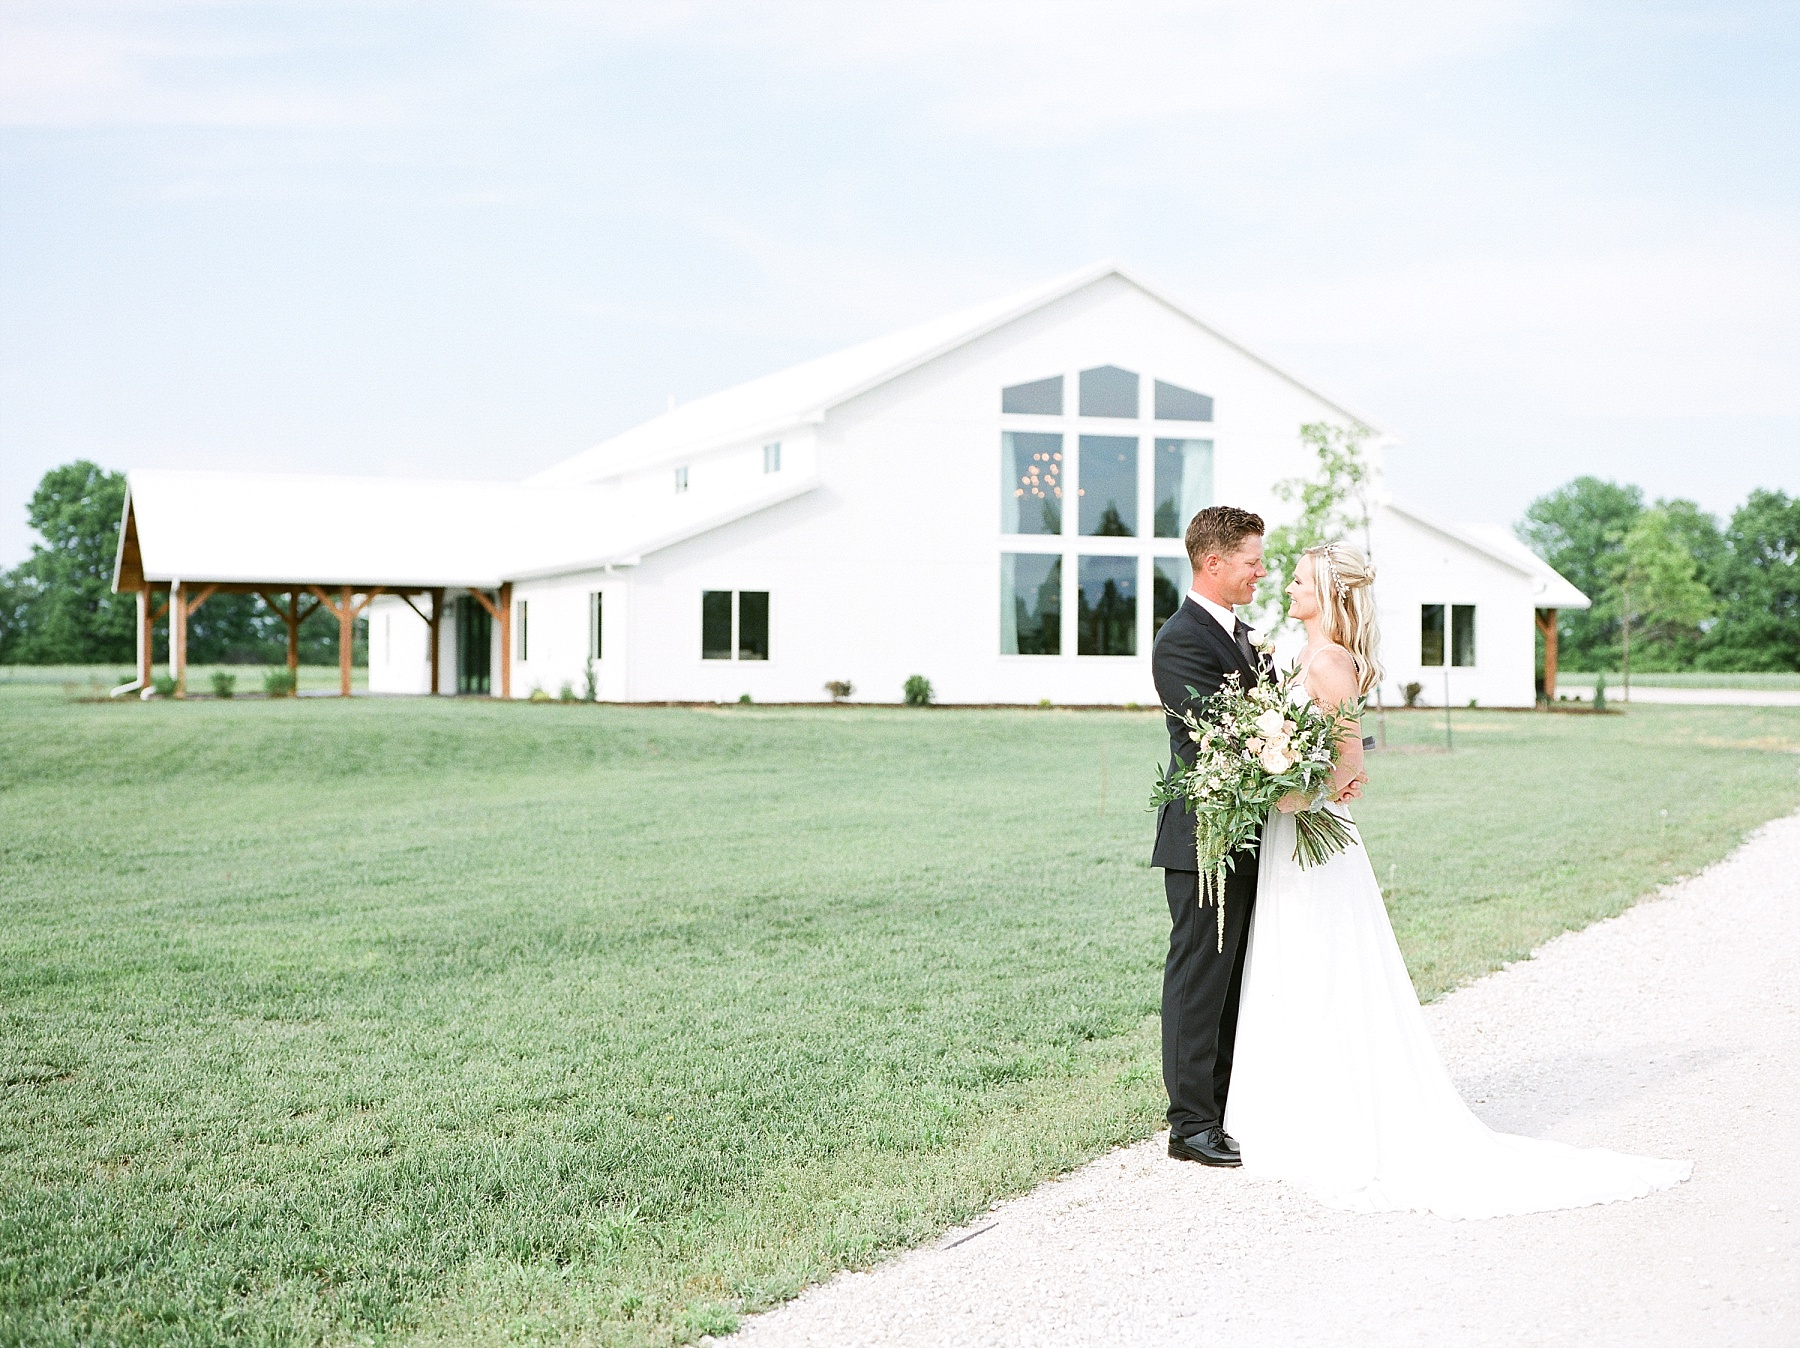 Textural Organic Wedding in All White Venue by Kelsi Kliethermes Wedding Photographer - Missouri, Midwest, and Destinations_0056.jpg